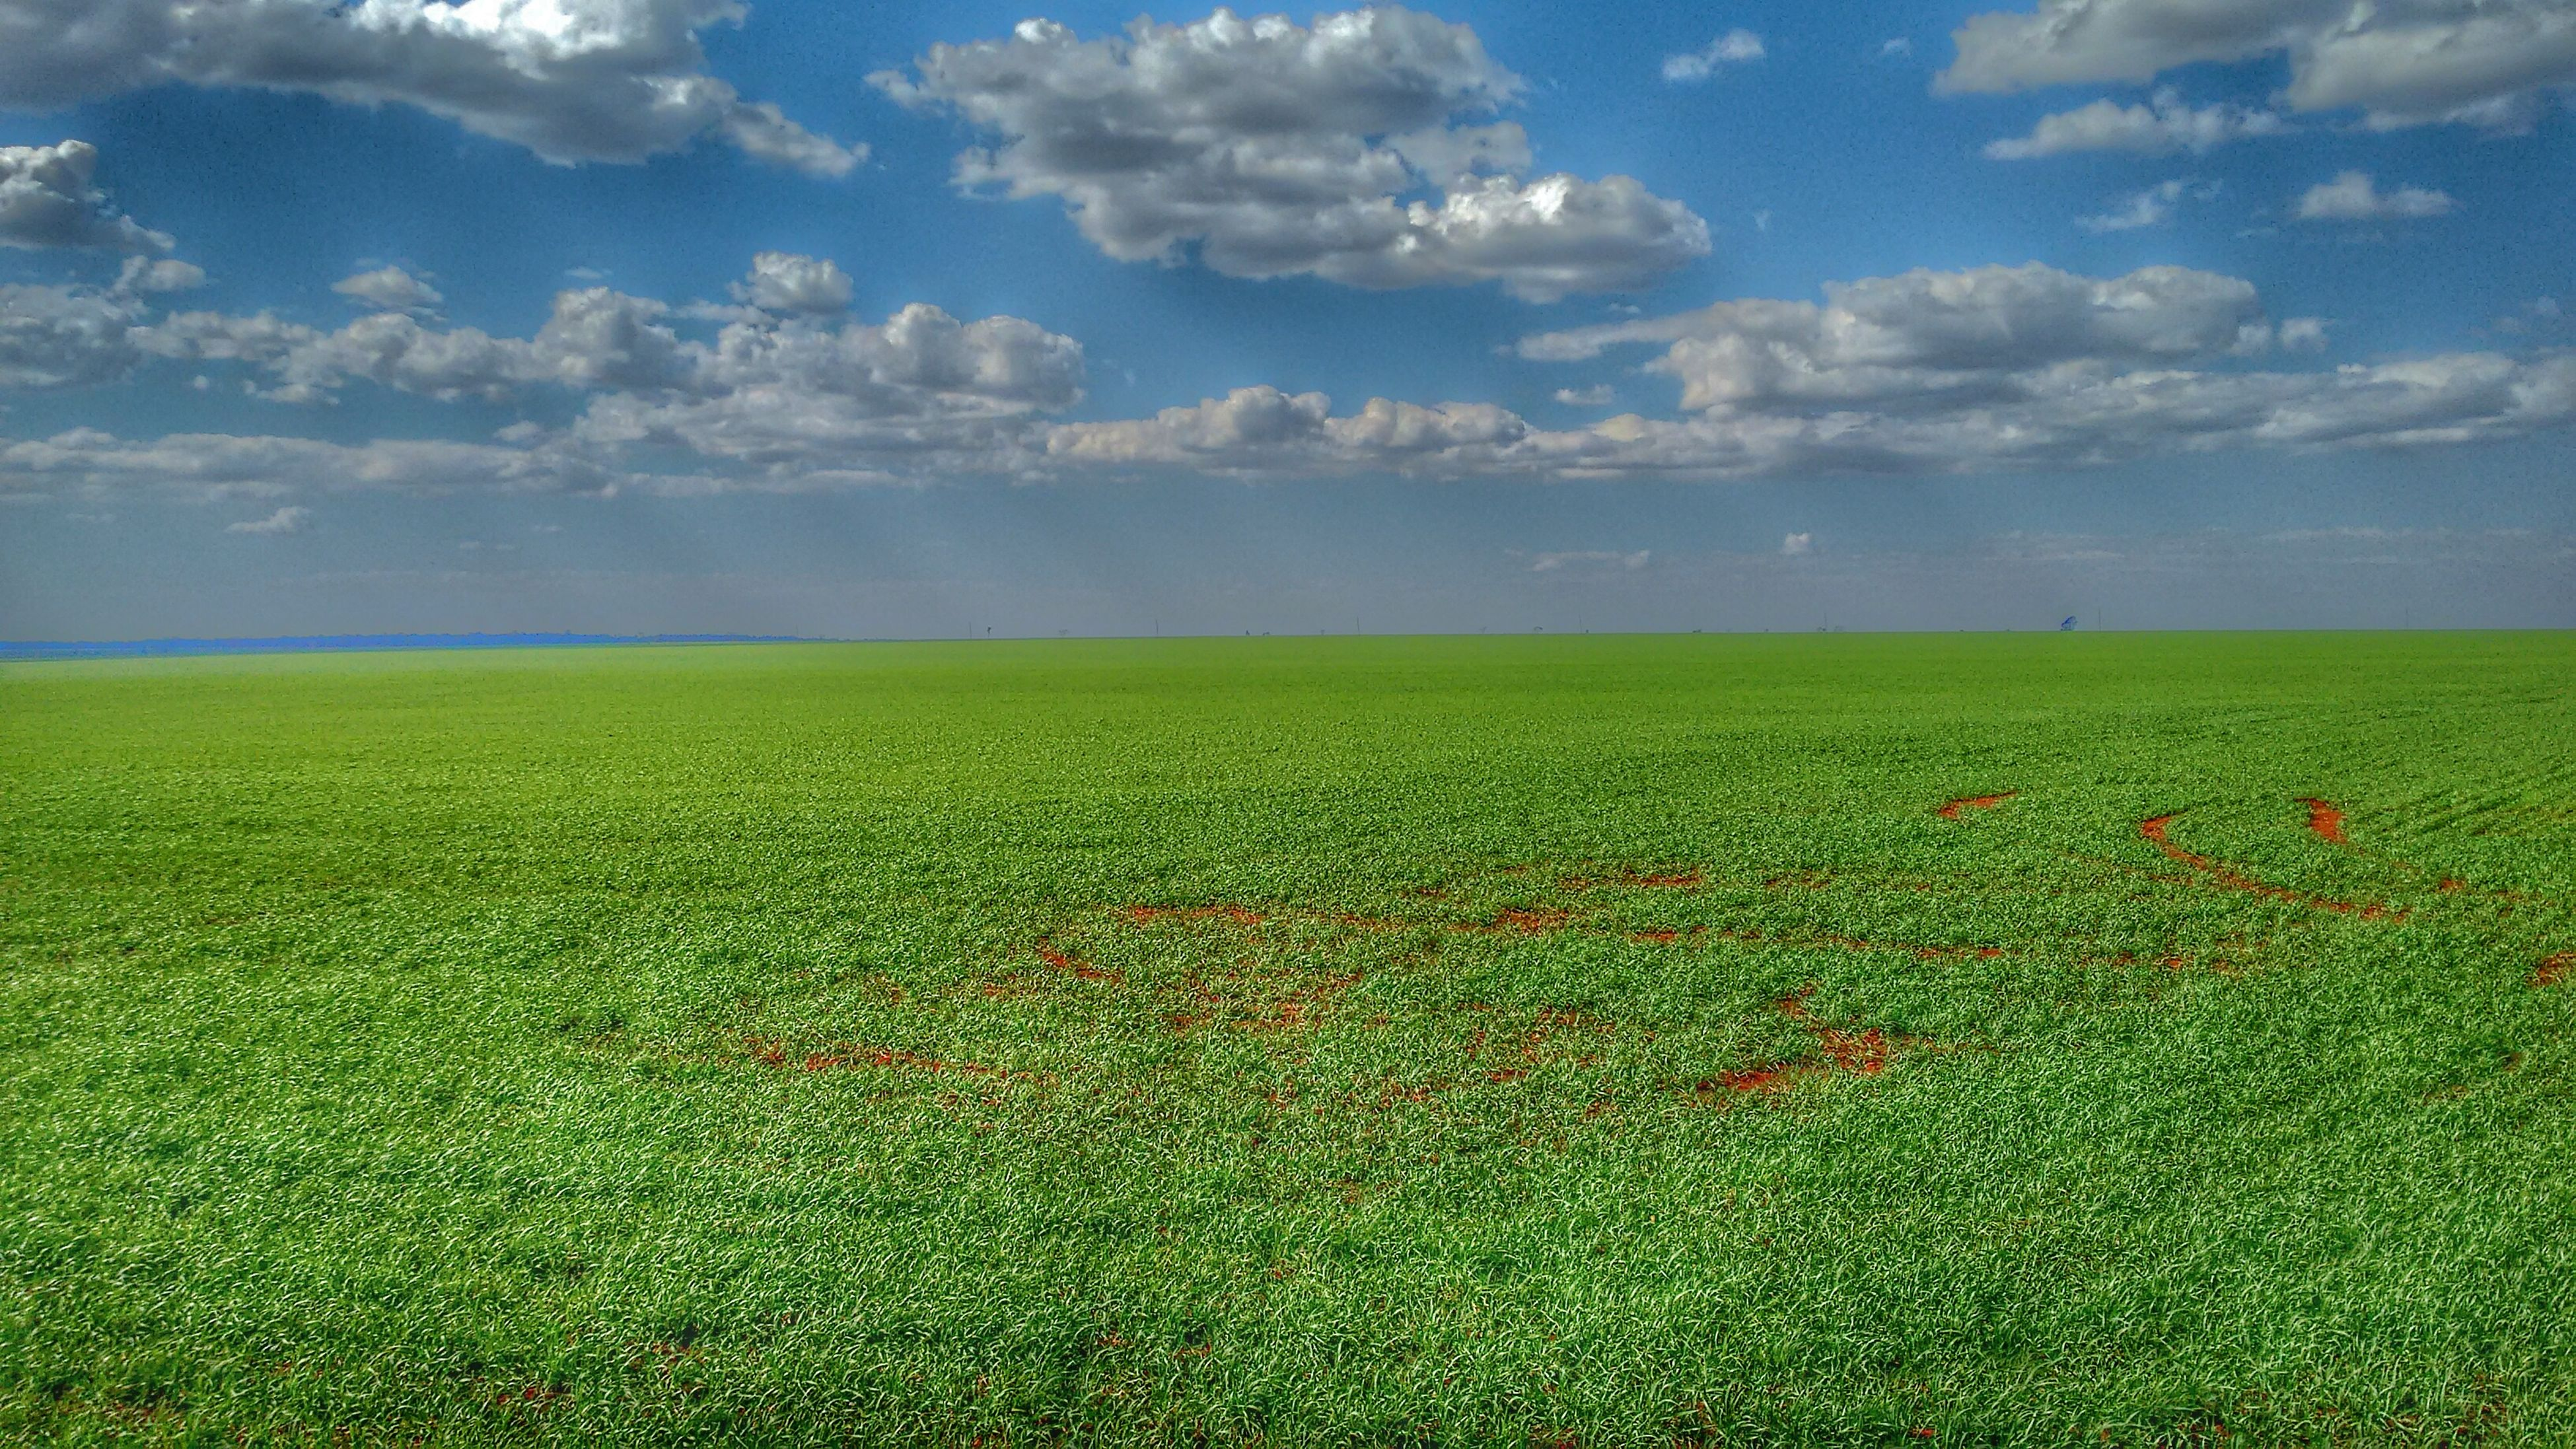 landscape, field, sky, tranquil scene, tranquility, beauty in nature, scenics, agriculture, rural scene, nature, cloud - sky, growth, horizon over land, green color, cloud, grass, idyllic, cloudy, cultivated land, yellow, outdoors, no people, day, remote, weather, plant, non-urban scene, grassy, green, blue